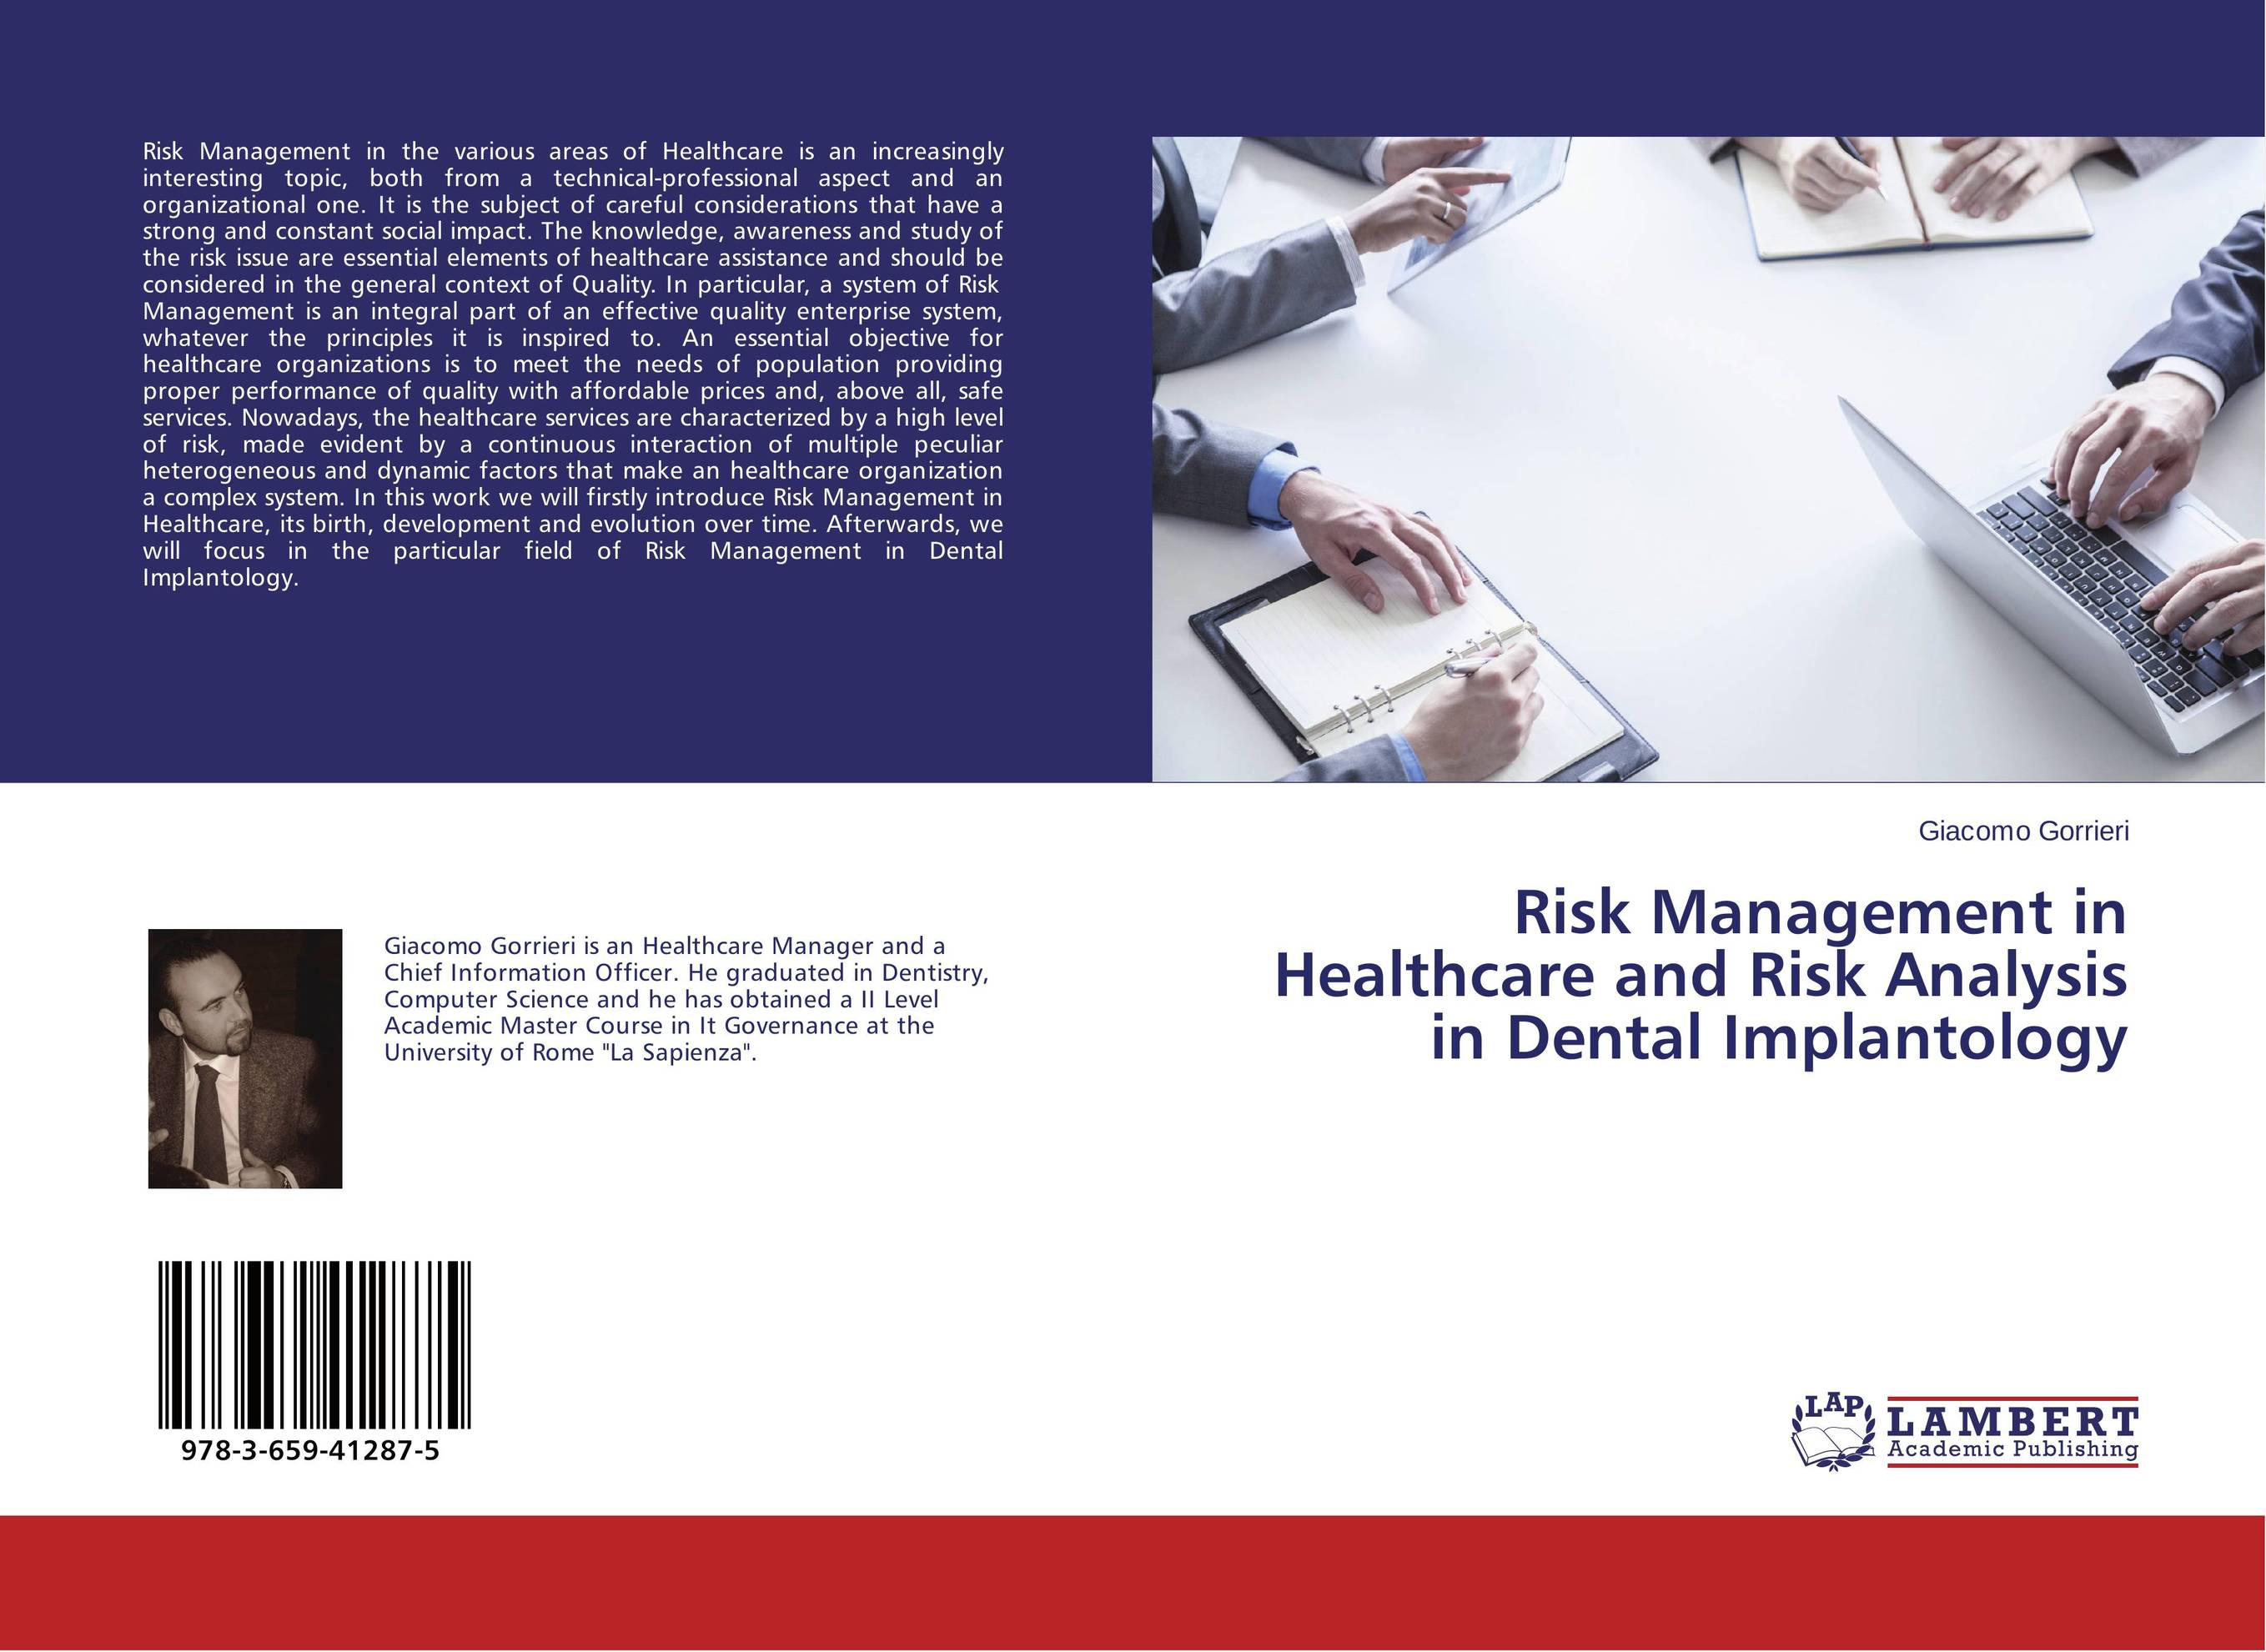 Risk Management in Healthcare and Risk Analysis in Dental Implantology